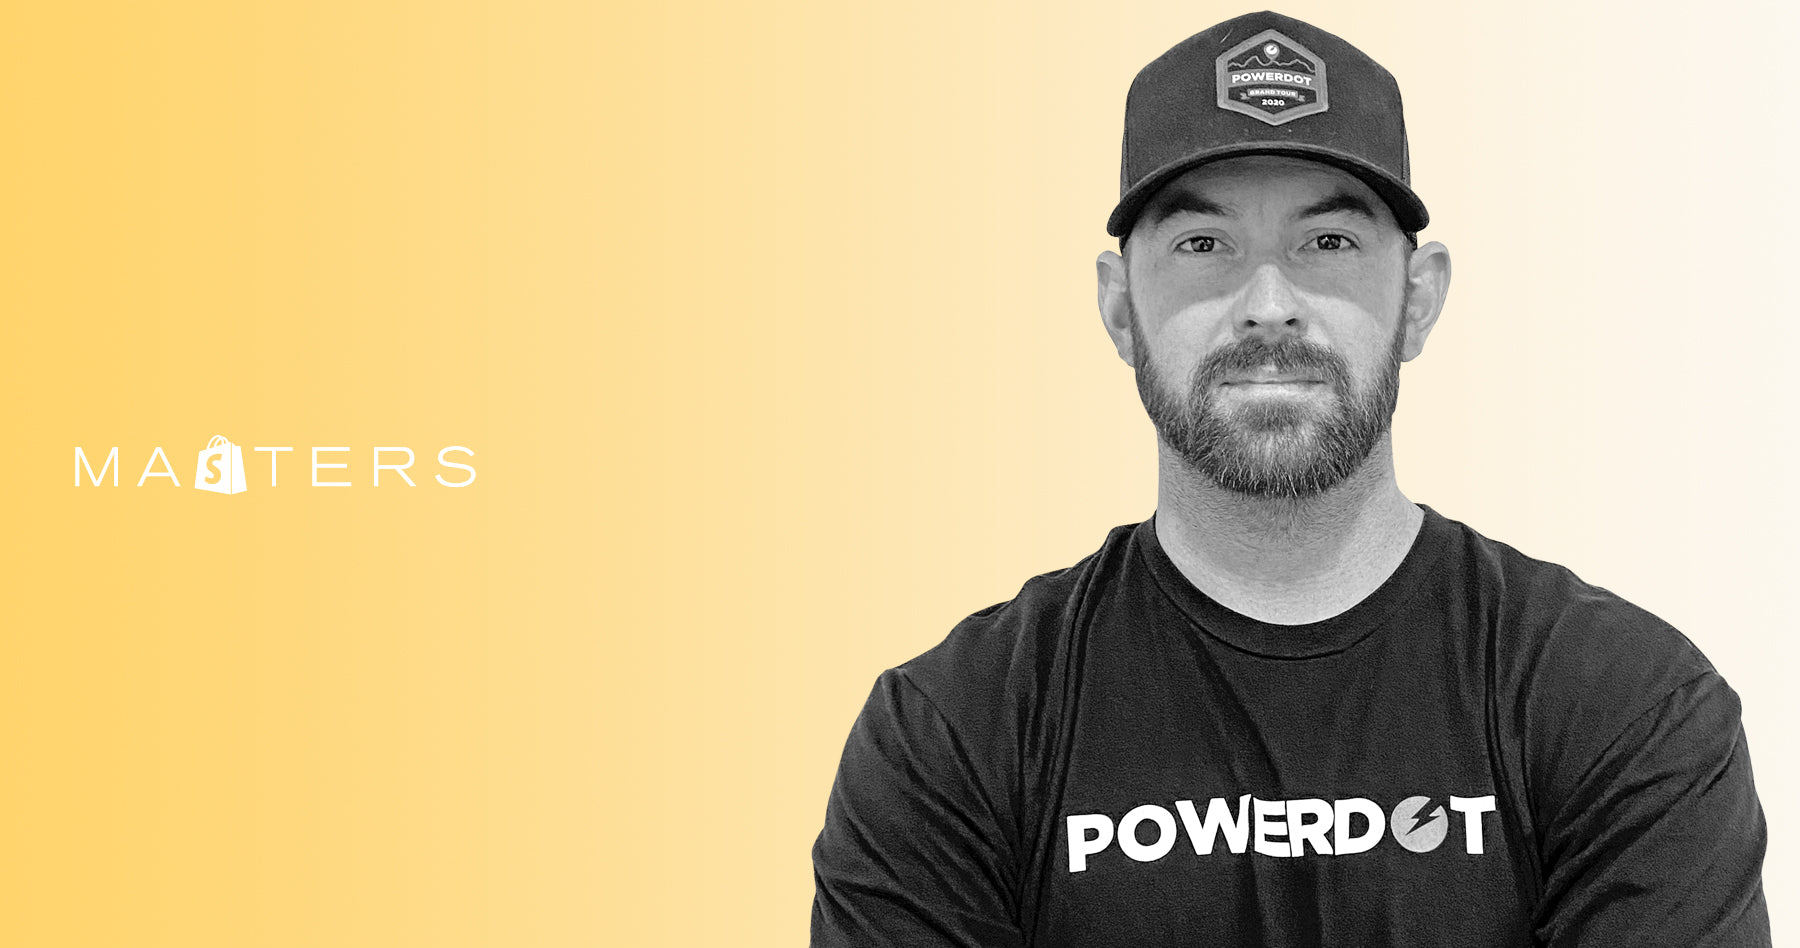 Director of ecommerce from PowerDot, Chase Novelich.